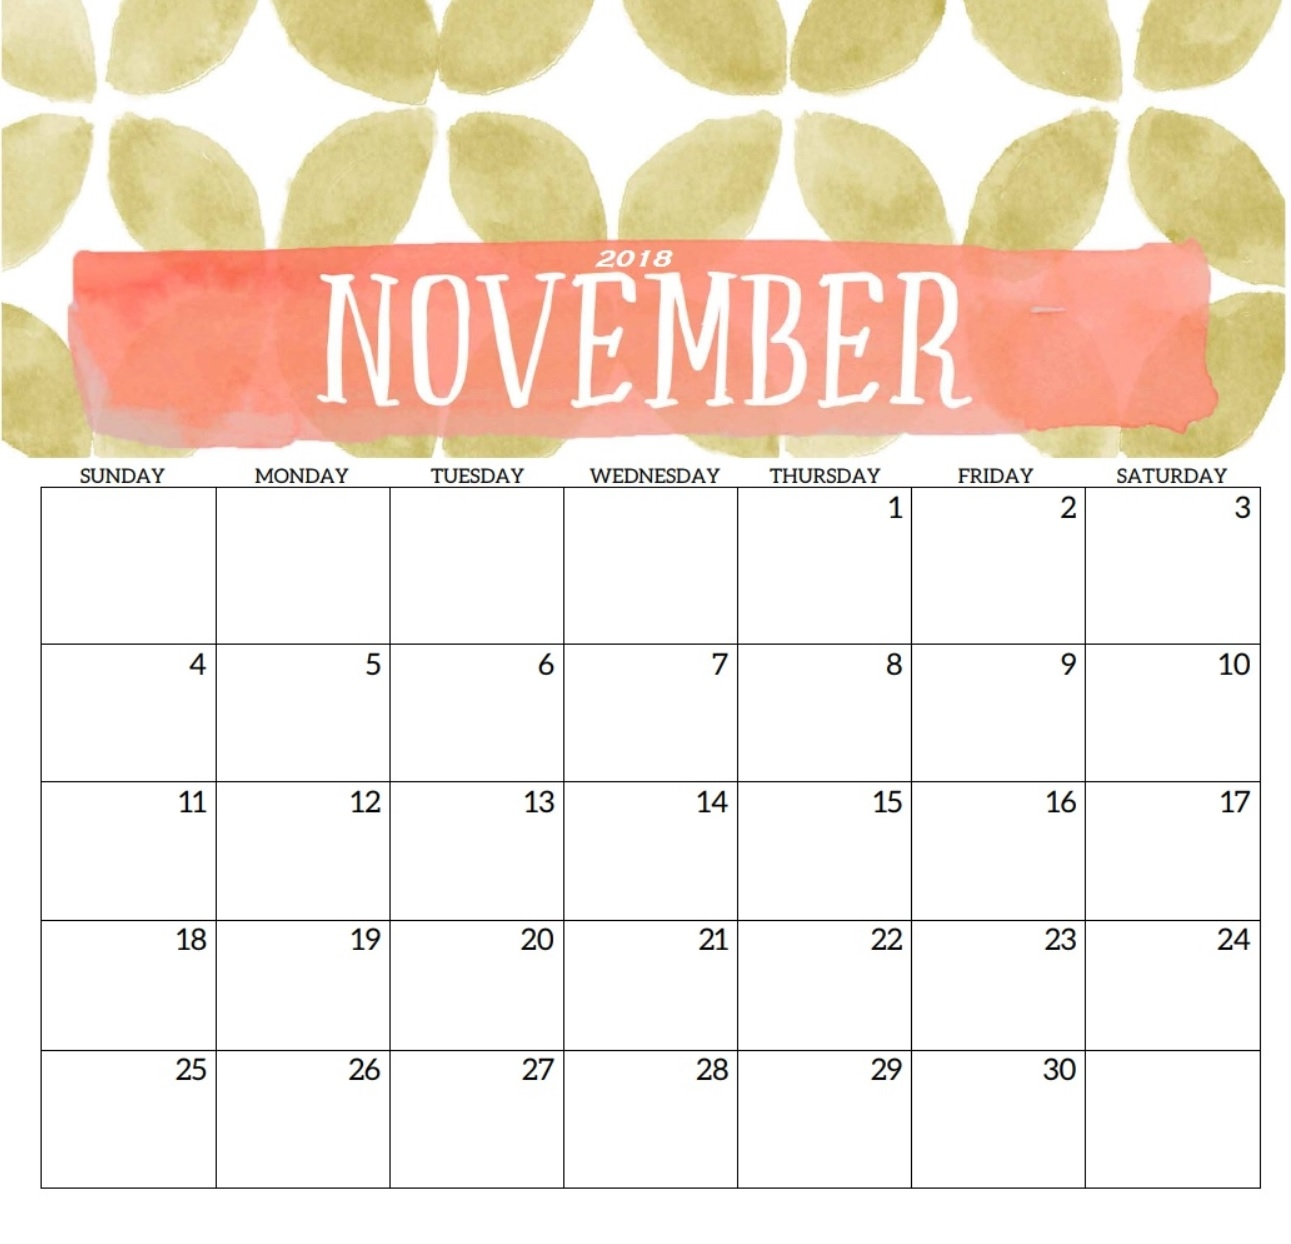 download template calendar of november 2018 pdf excel word November 2018 Excel Calendar erdferdf